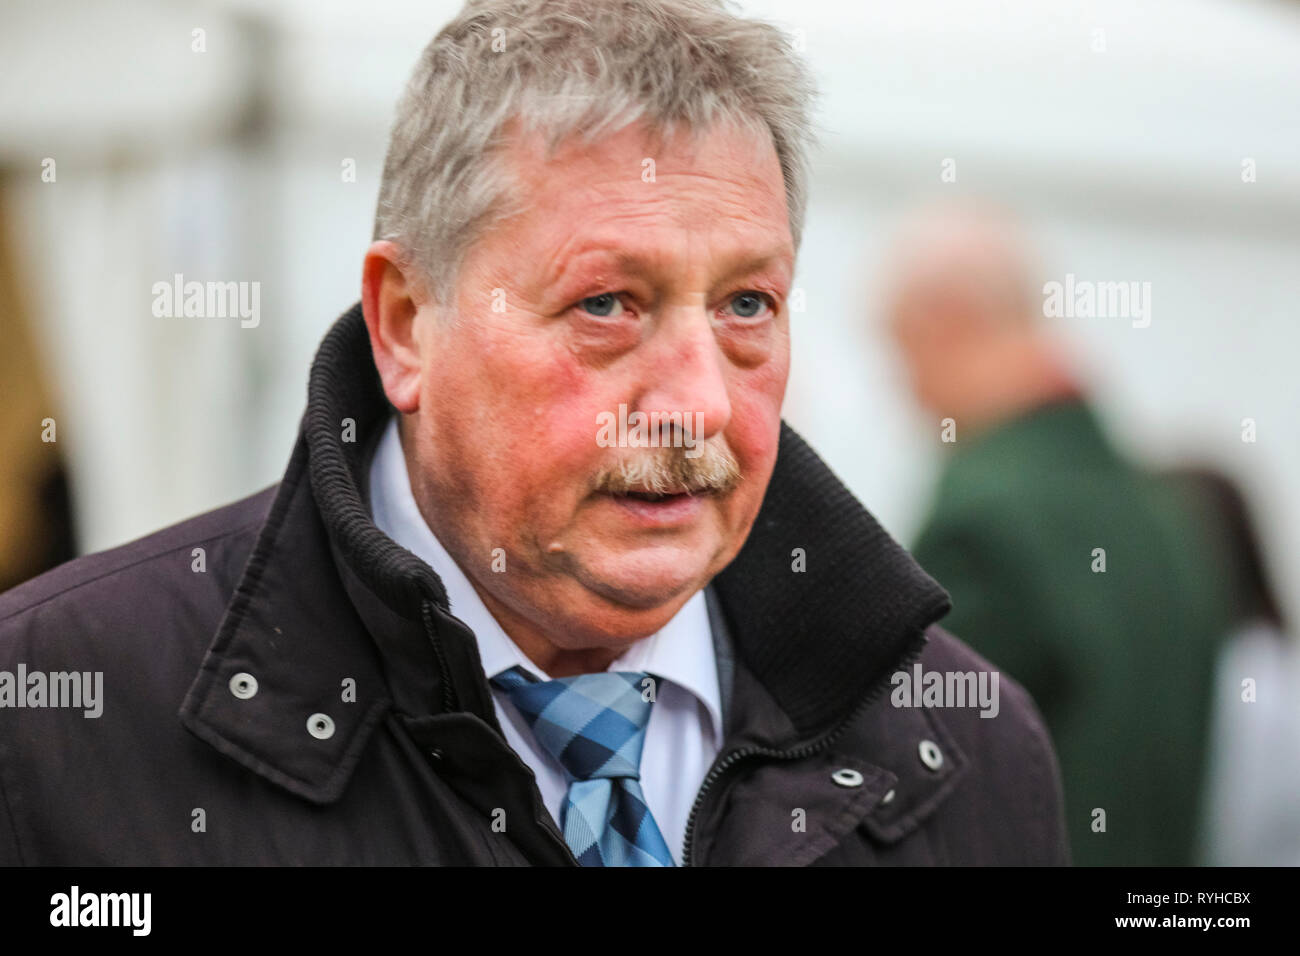 Westminster, London, UK. 13th Mar, 2019. Sammy Wilson, MP, DUP Democratic Unionist Party Member of Parliament for East Antrim. Credit: Imageplotter/Alamy Live News - Stock Image